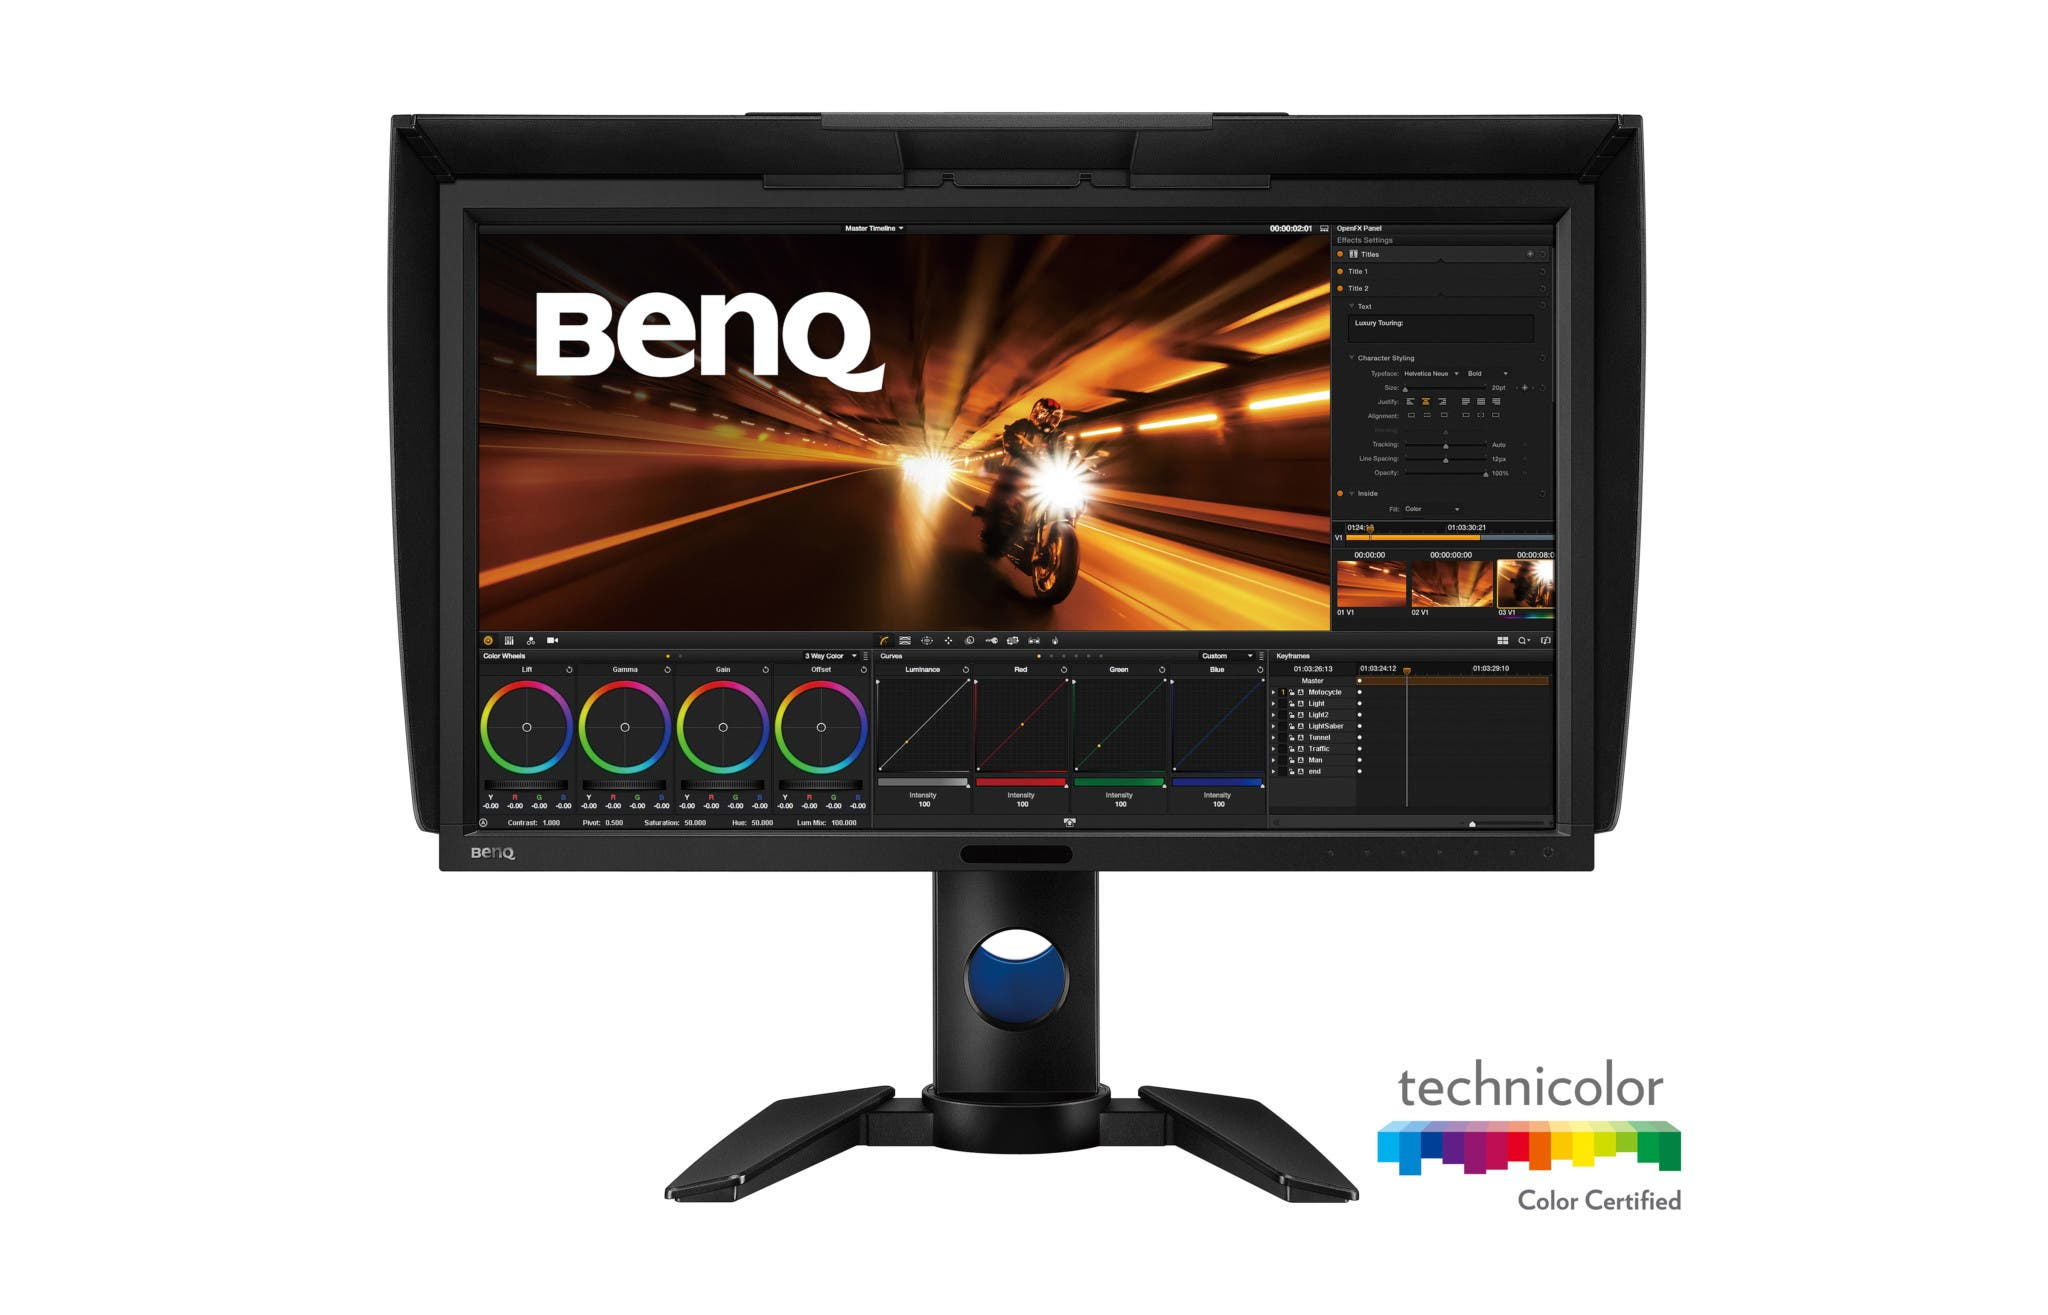 The BenQ PV270 Boasts 99% of the Adobe RGB Spectrum